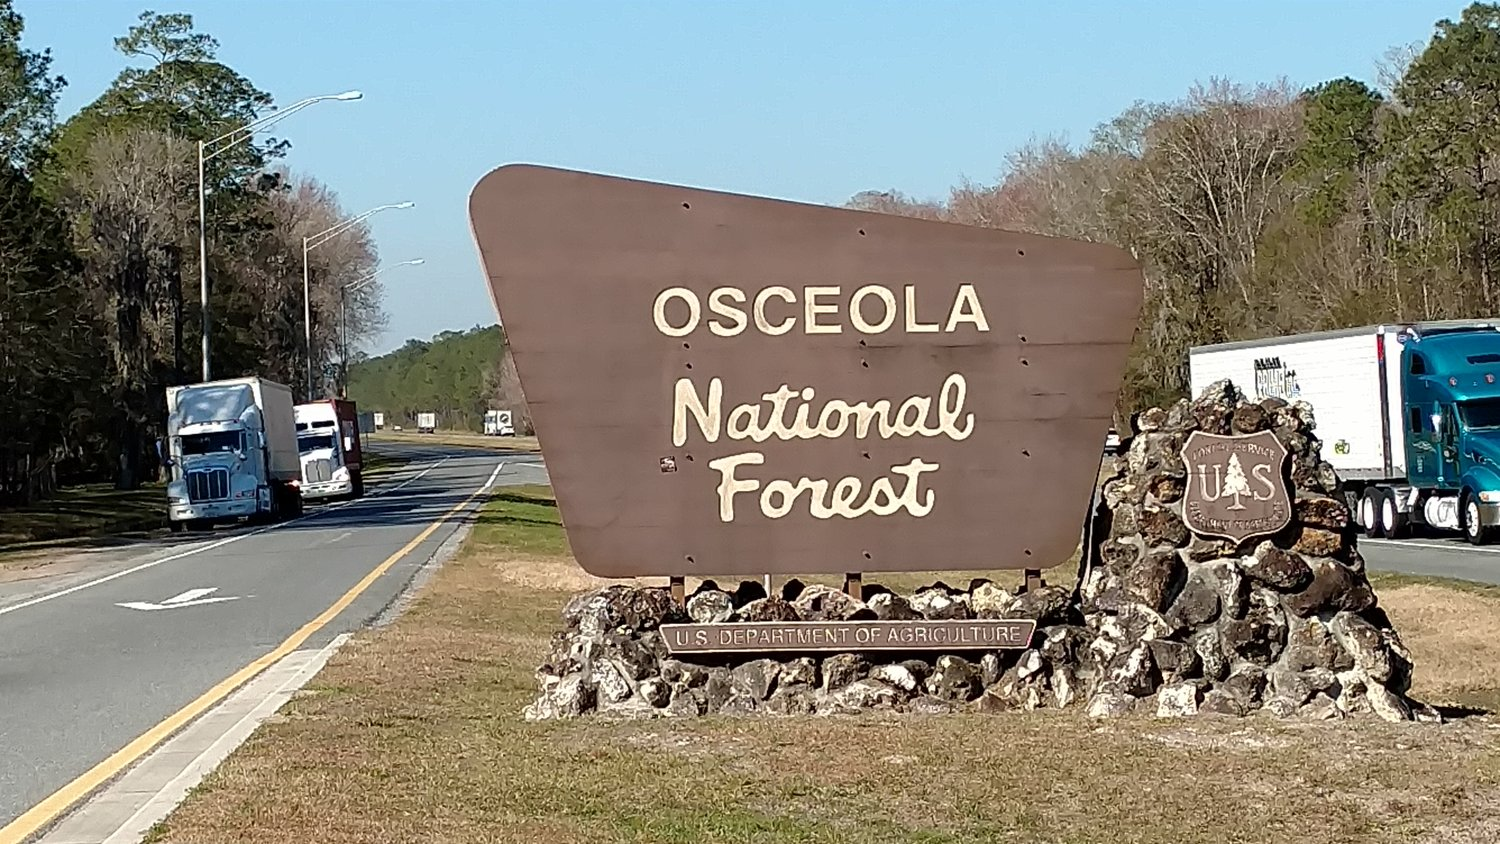 Osceola National Forest - Photo Larry Atkins